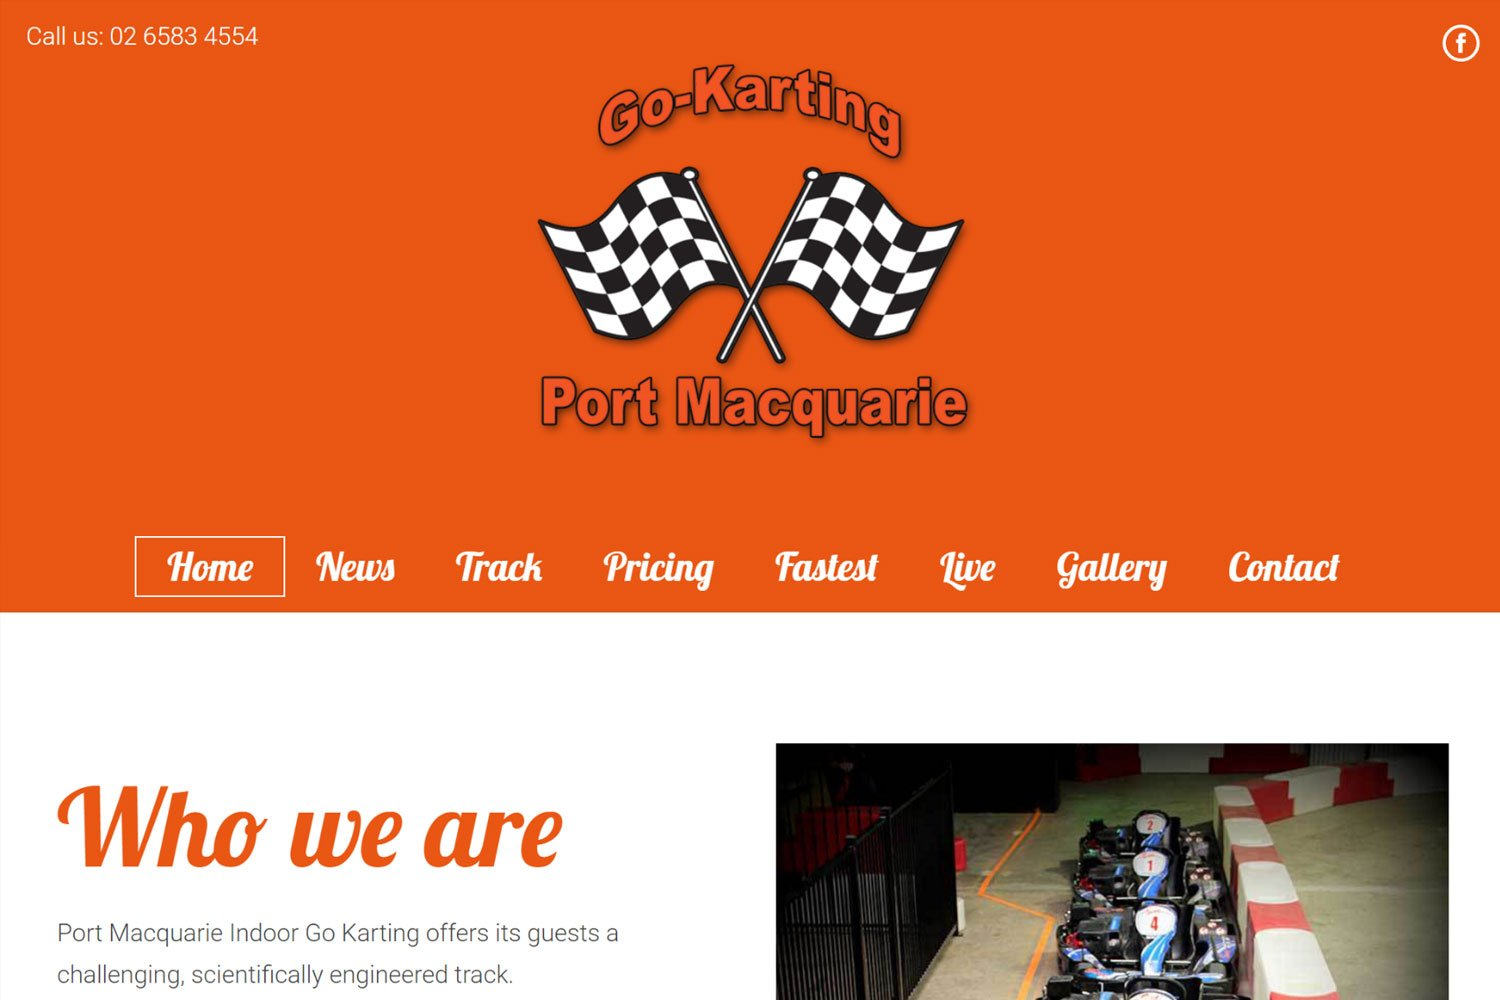 Edgezone Media's Client - Go-Karting Indoor - www.GoKartingPM.com